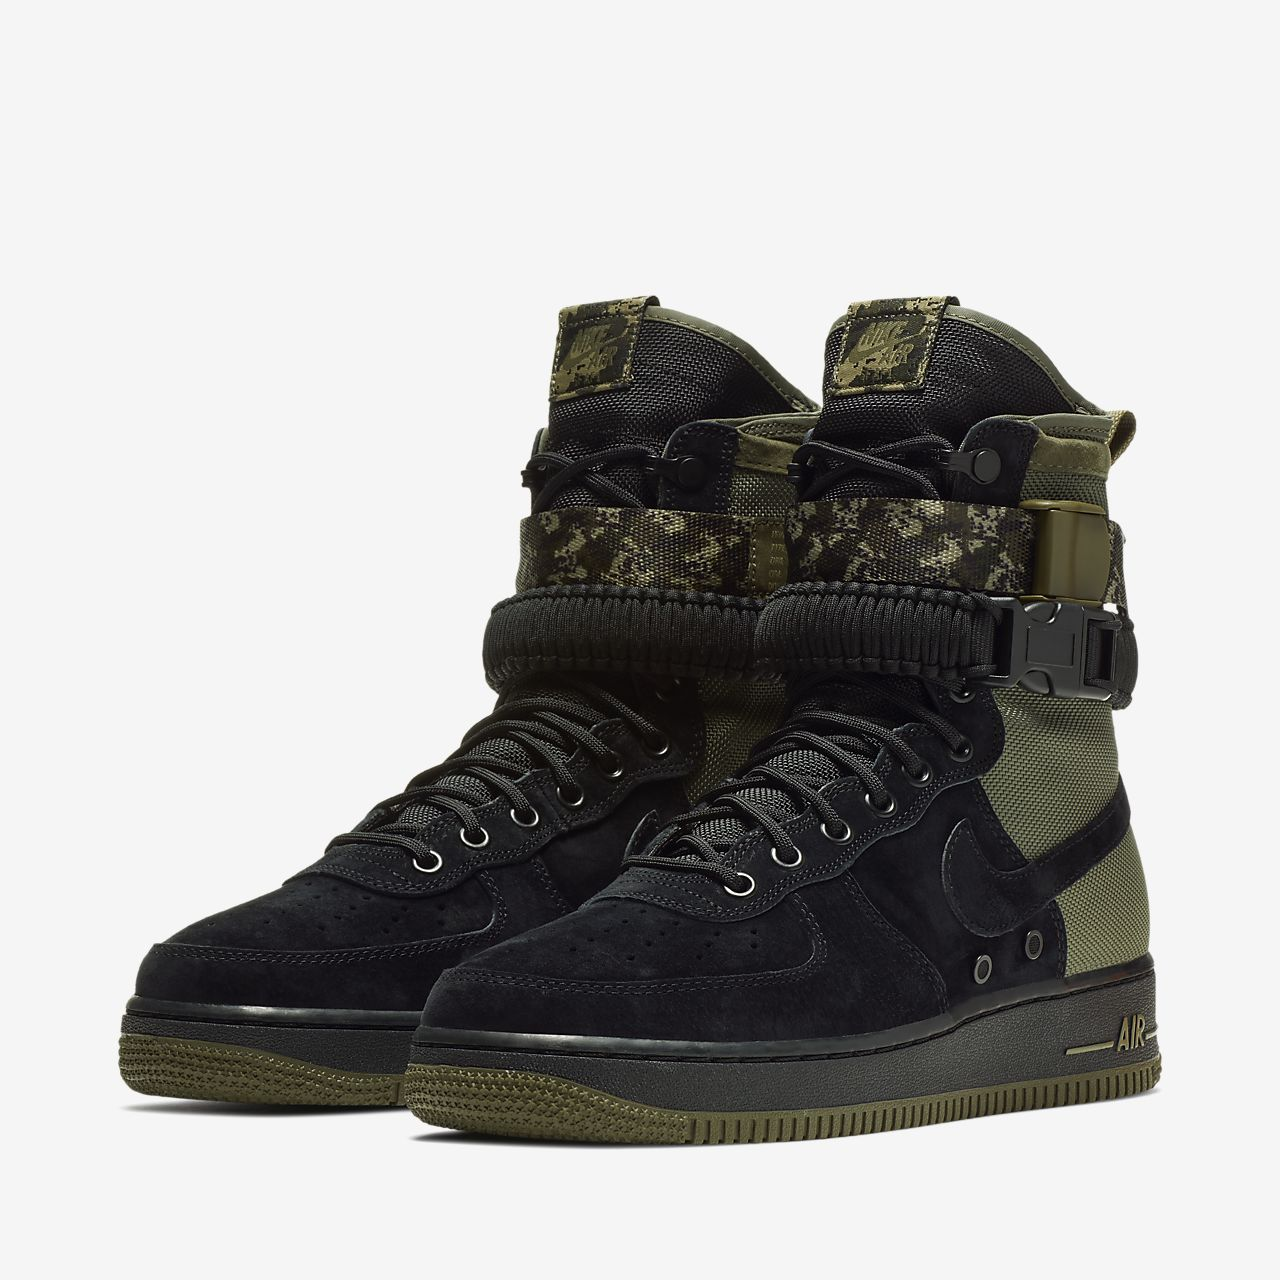 Nike SF Air Force 1 Men's Lifestyle Boots Black/Brown oN7098E